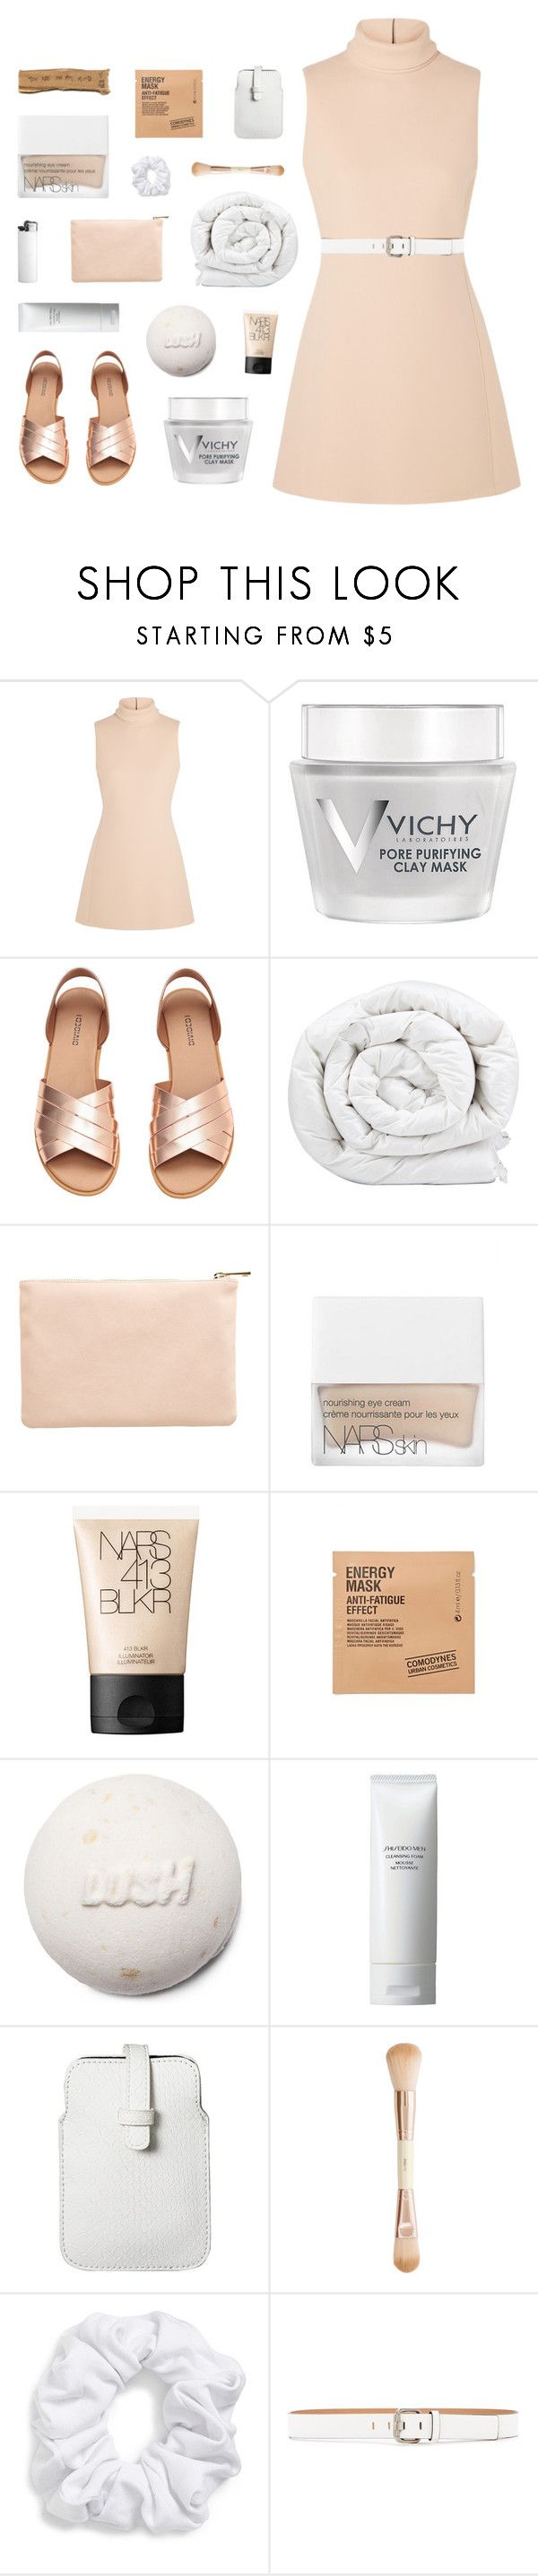 """""""keep your silver, give me that gold"""" by lucidmoon ❤ liked on Polyvore featuring Calvin Klein Collection, Vichy, Brinkhaus, Miss Selfridge, NARS Cosmetics, Comodynes, Shiseido, Mossimo, H&M and Natasha"""